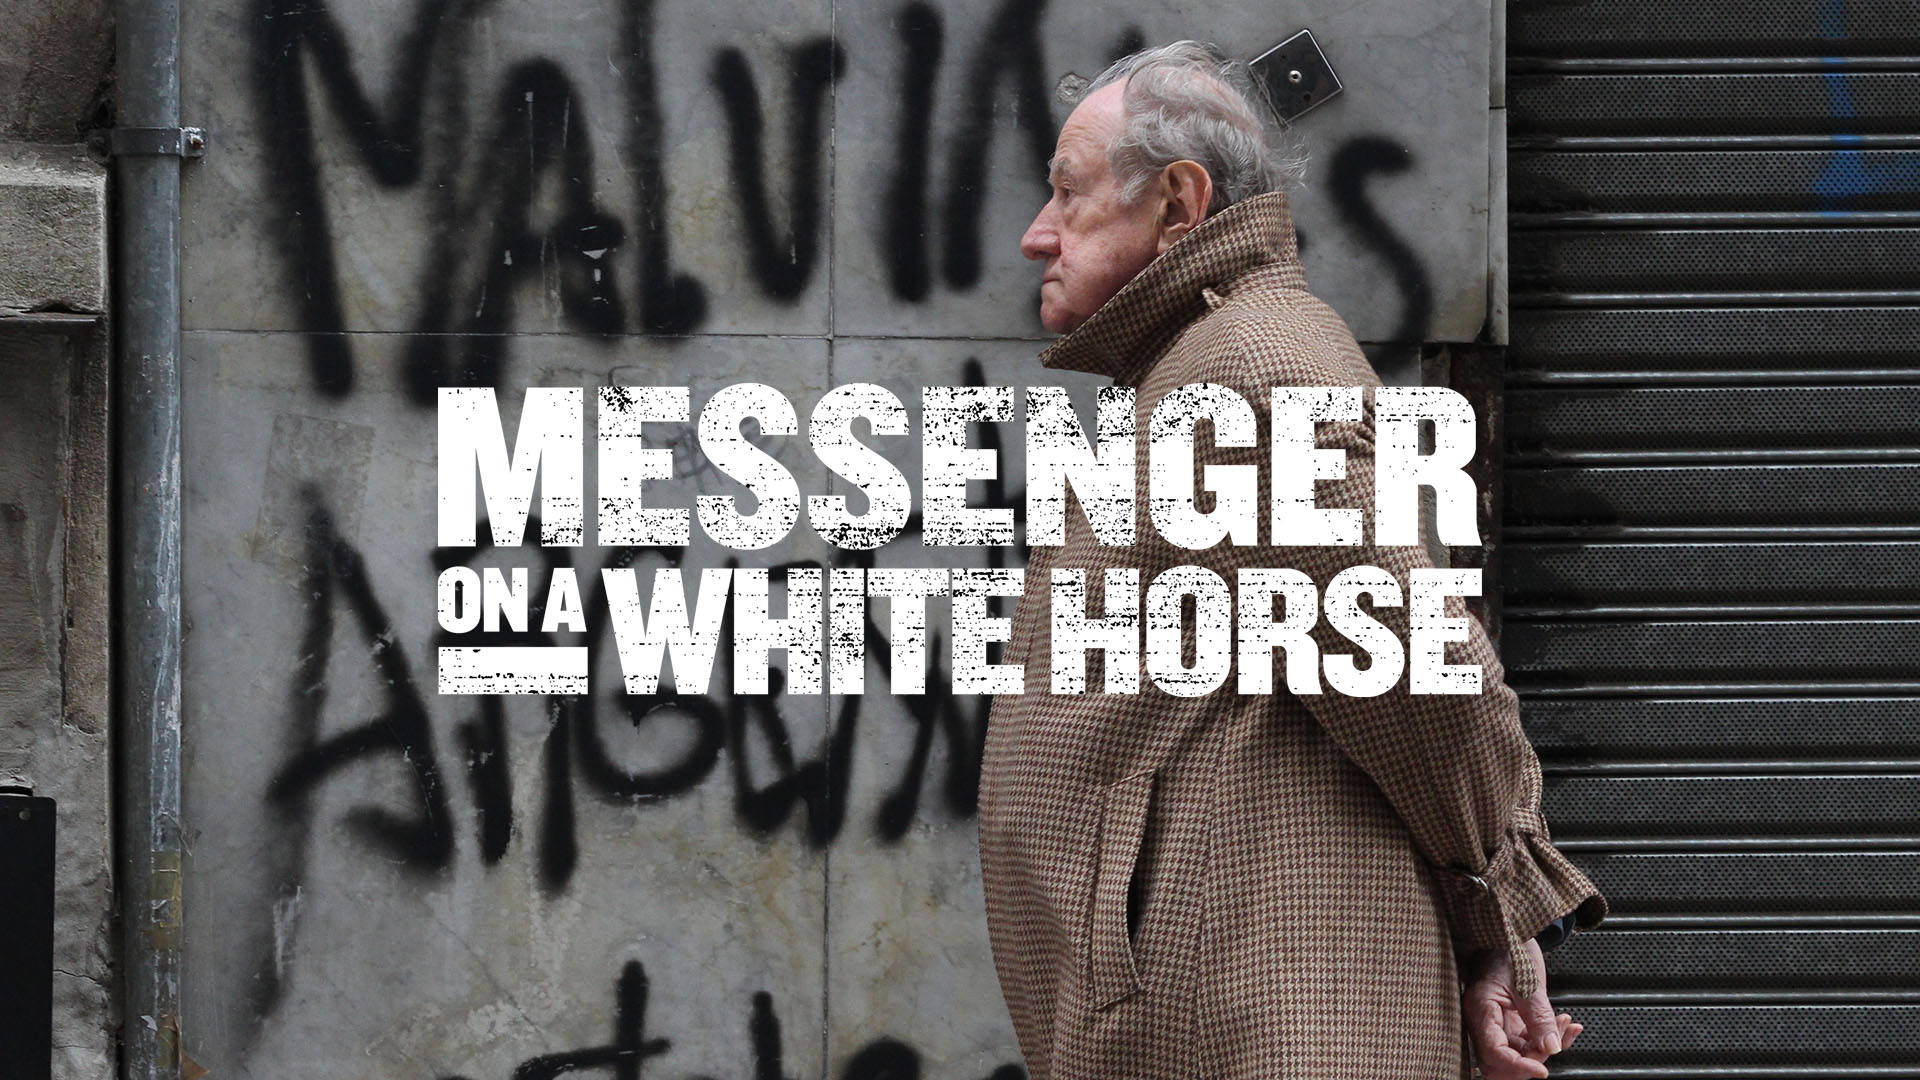 Messenger on a White Horse